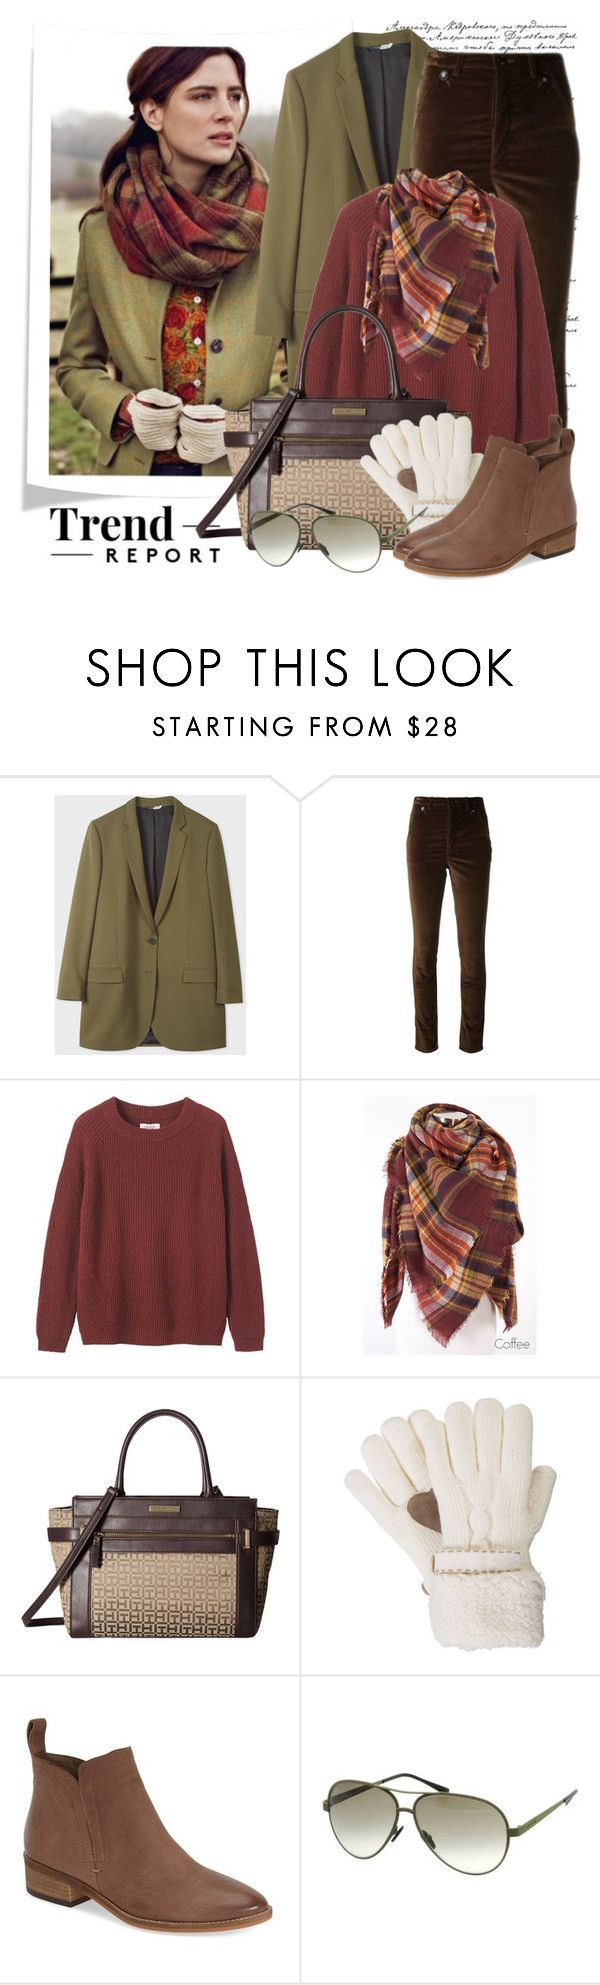 """""""Fall Trends"""" by brendariley-1 ❤ liked on Polyvore featuring Paul Smith, Isabel Marant, Toast, Tommy Hilfiger, Isotoner, Dolce Vita, Italia Independent and fallfashion"""